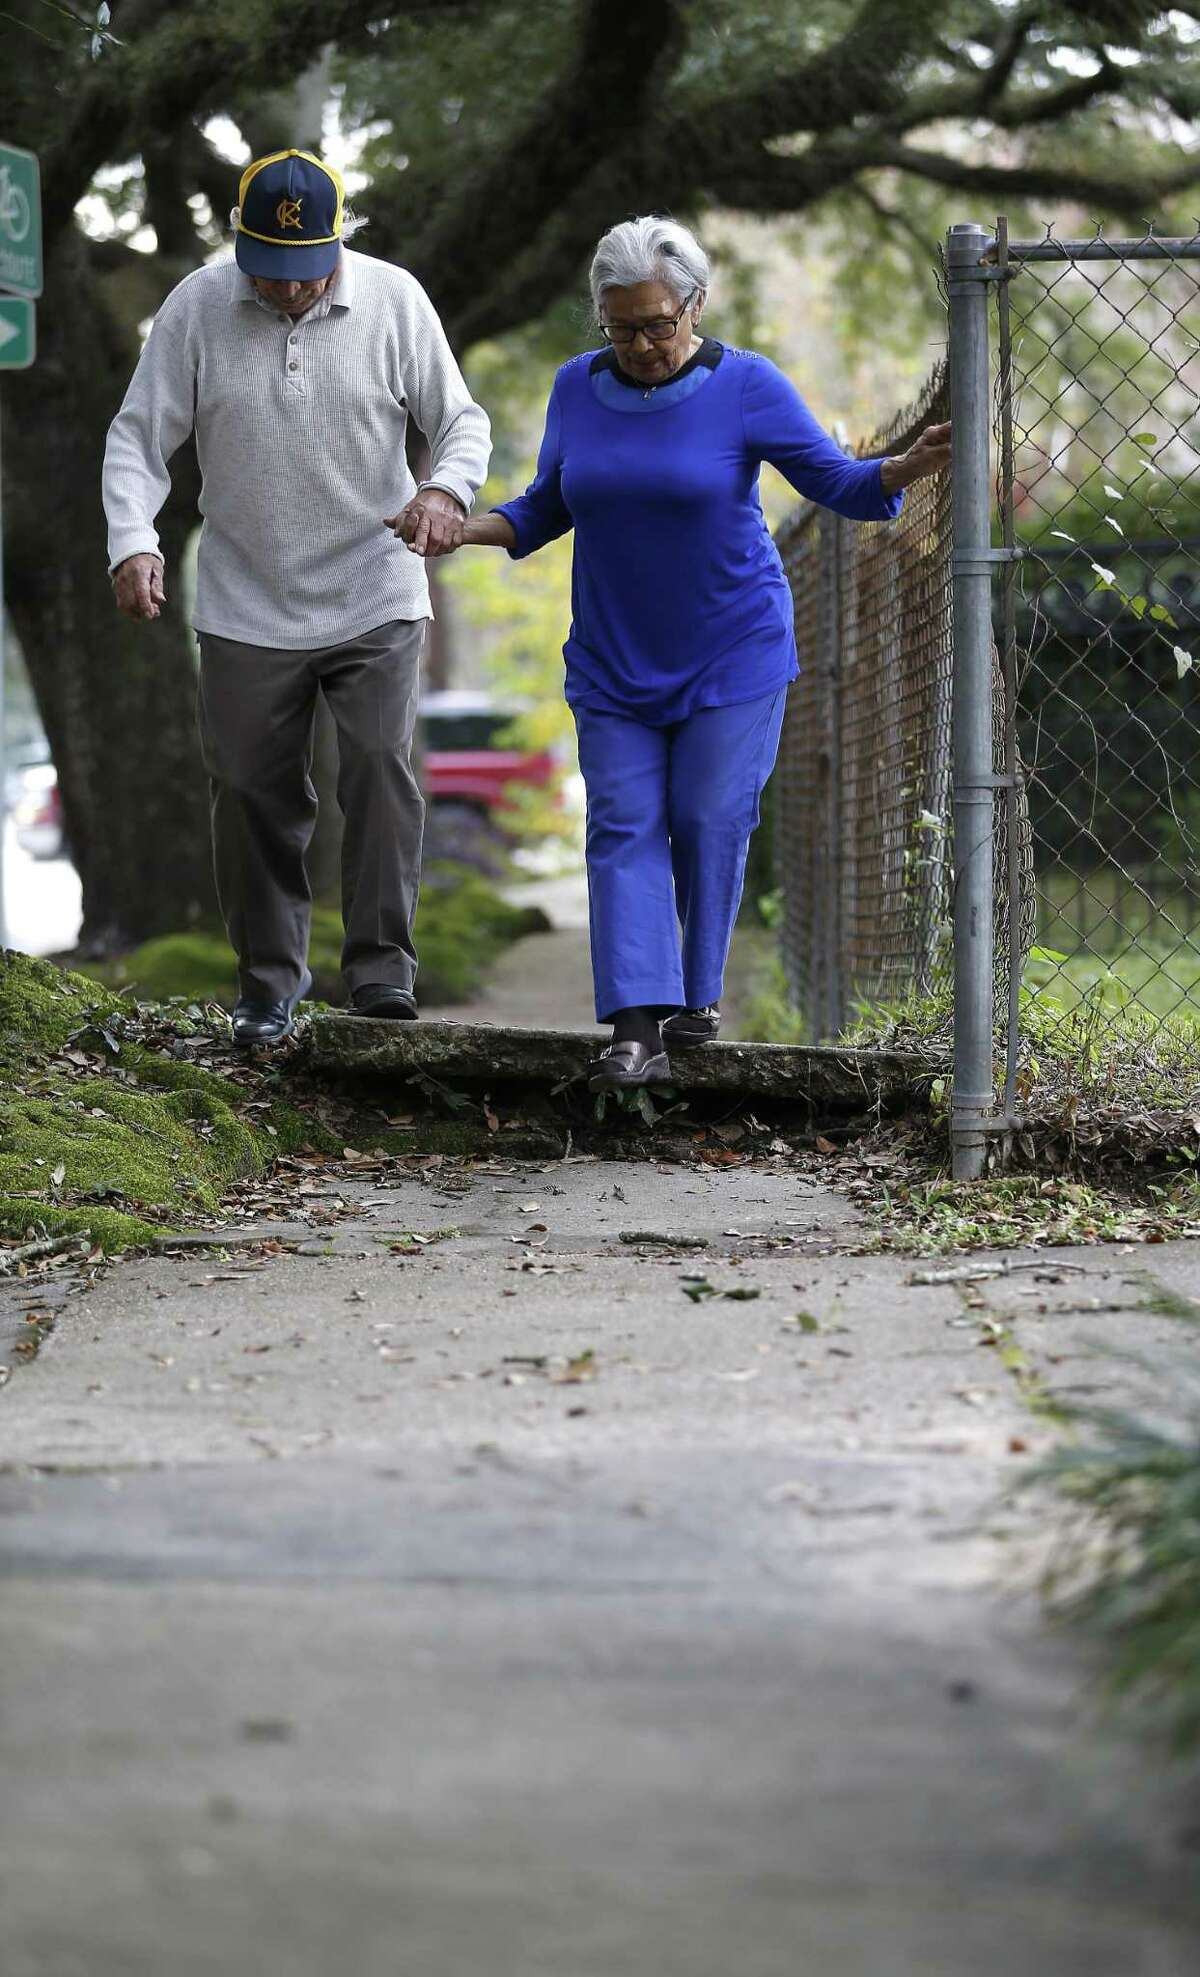 A couple, who did not wish to be identified, carefuly makes their way down a sidewalk, raised up due to tree roots that run under the concrete, on Bayland Street in the Heights.